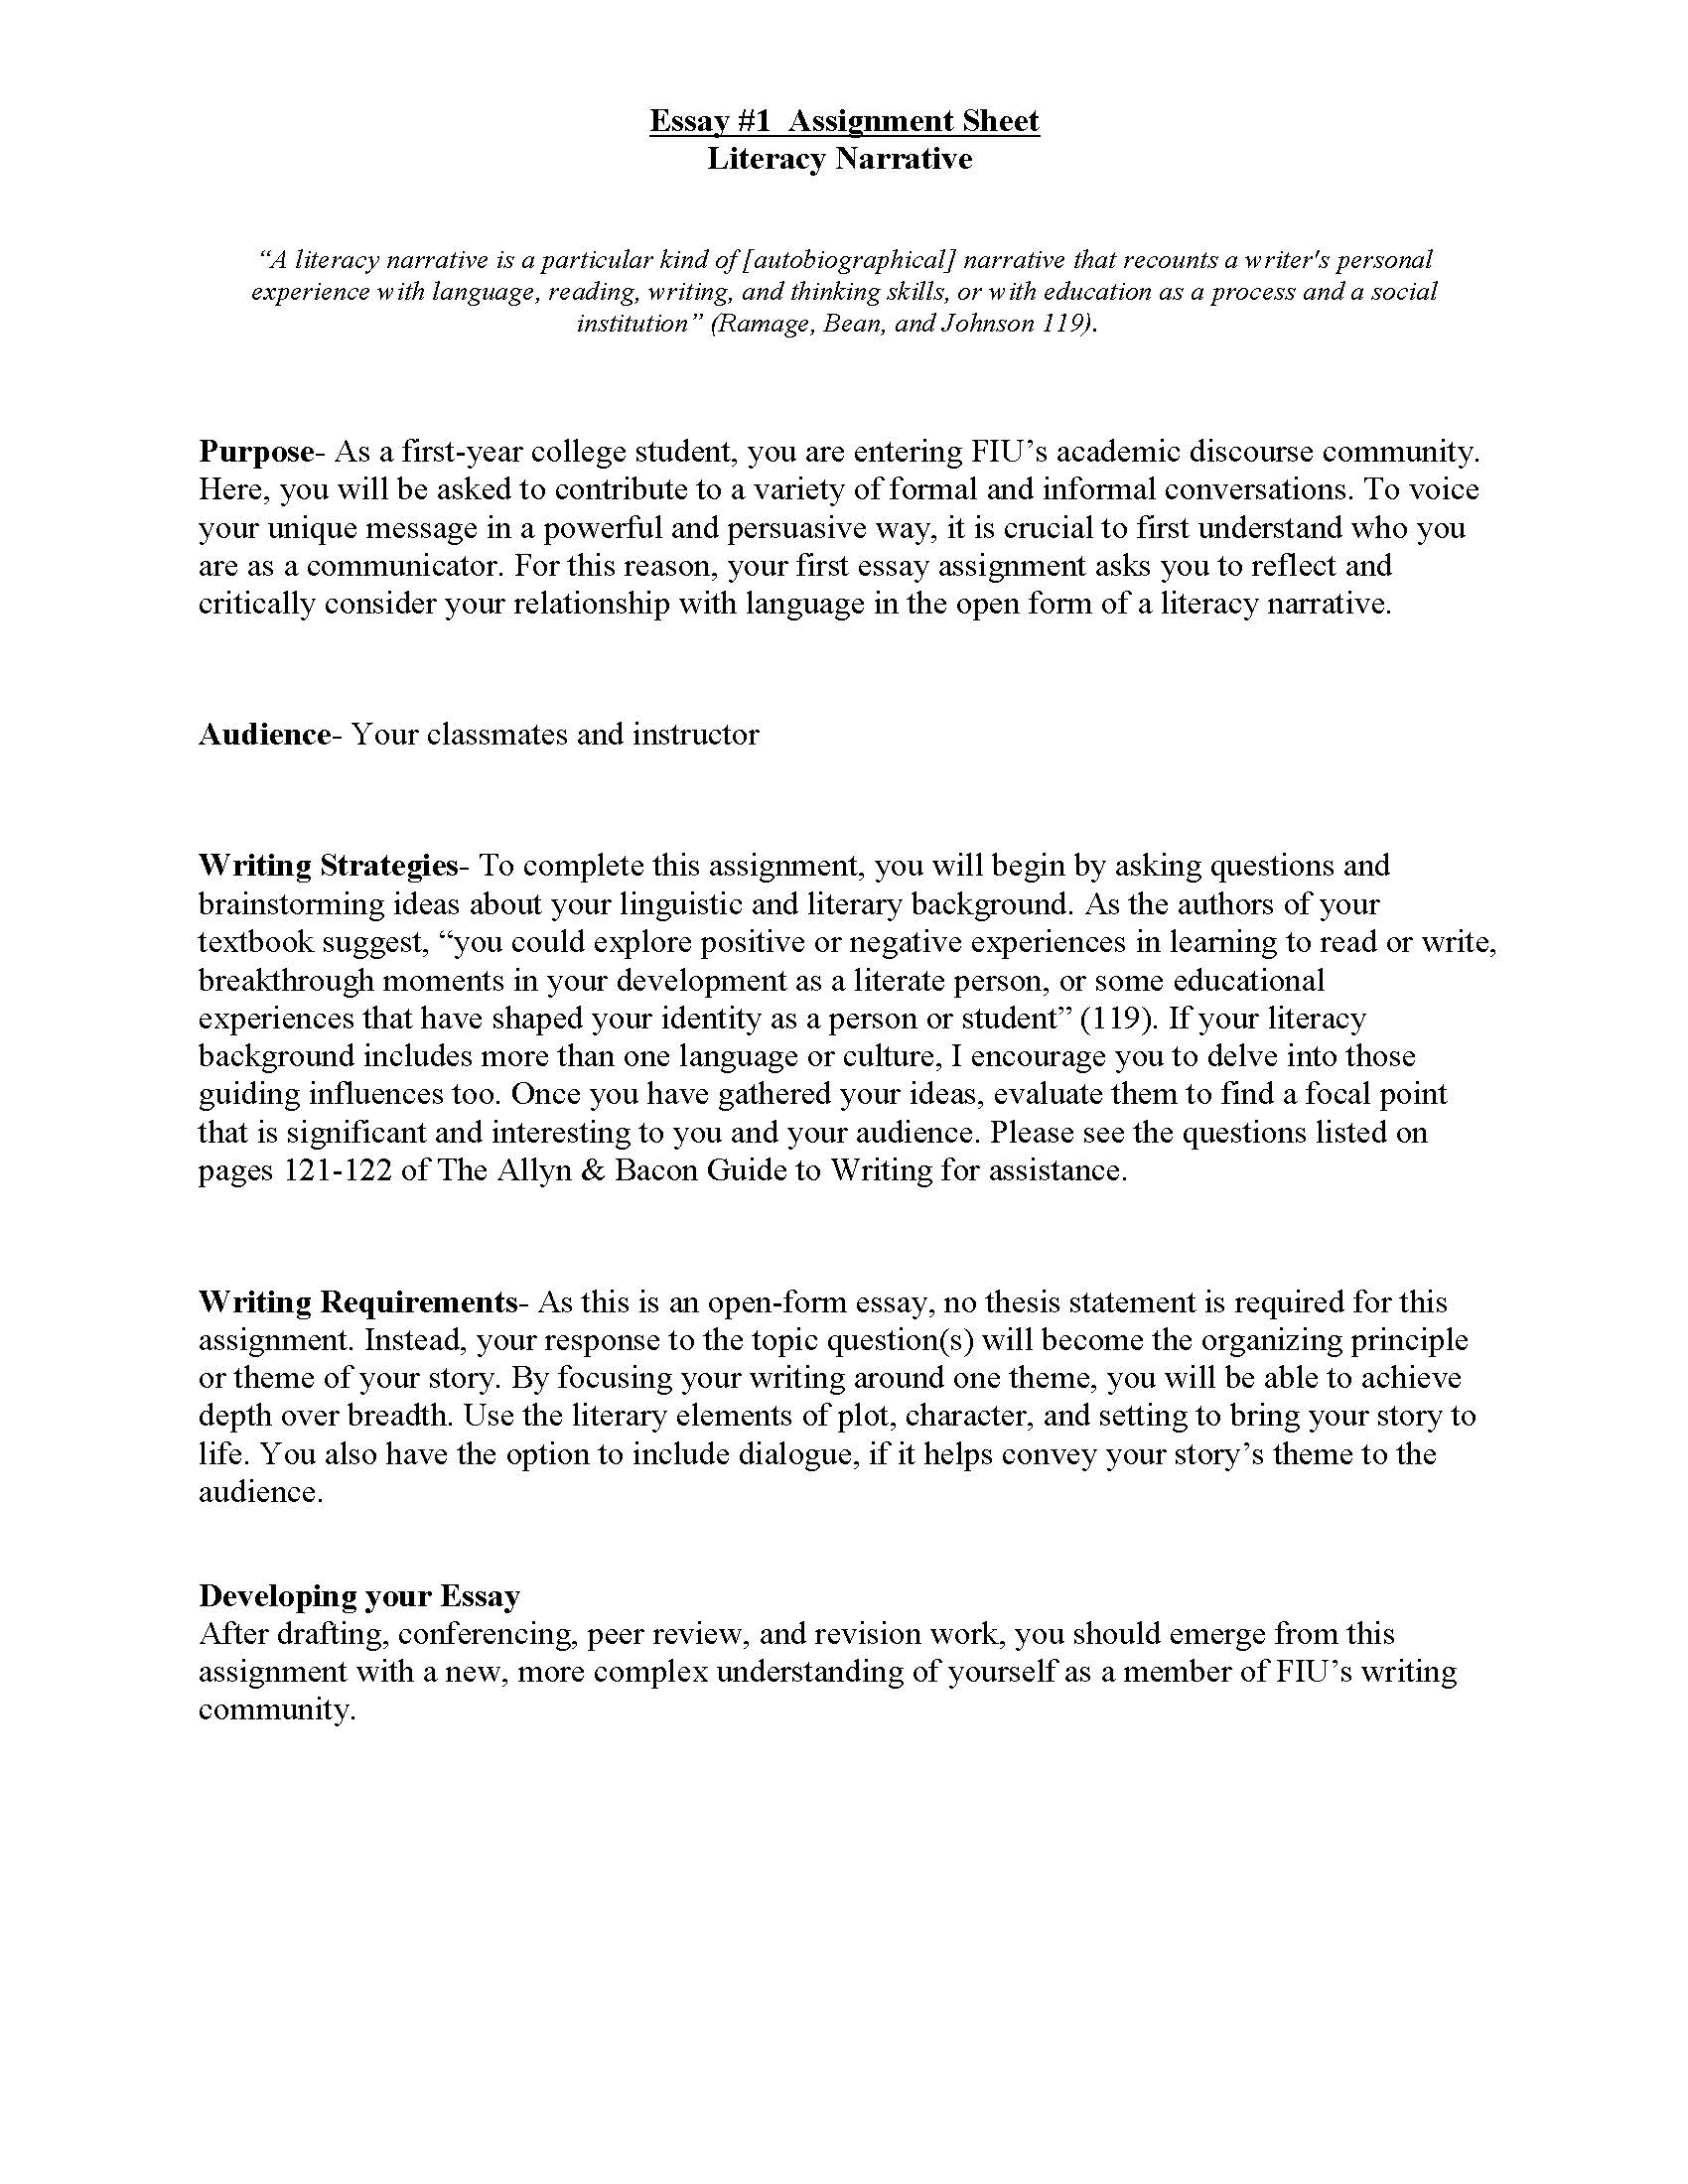 010 Essay Example Examples Of Narrative Literacy Unit Assignment Spring 2012 Page 1 Fascinating A In Third Person Apa Format 8th Grade Personal Essays Full